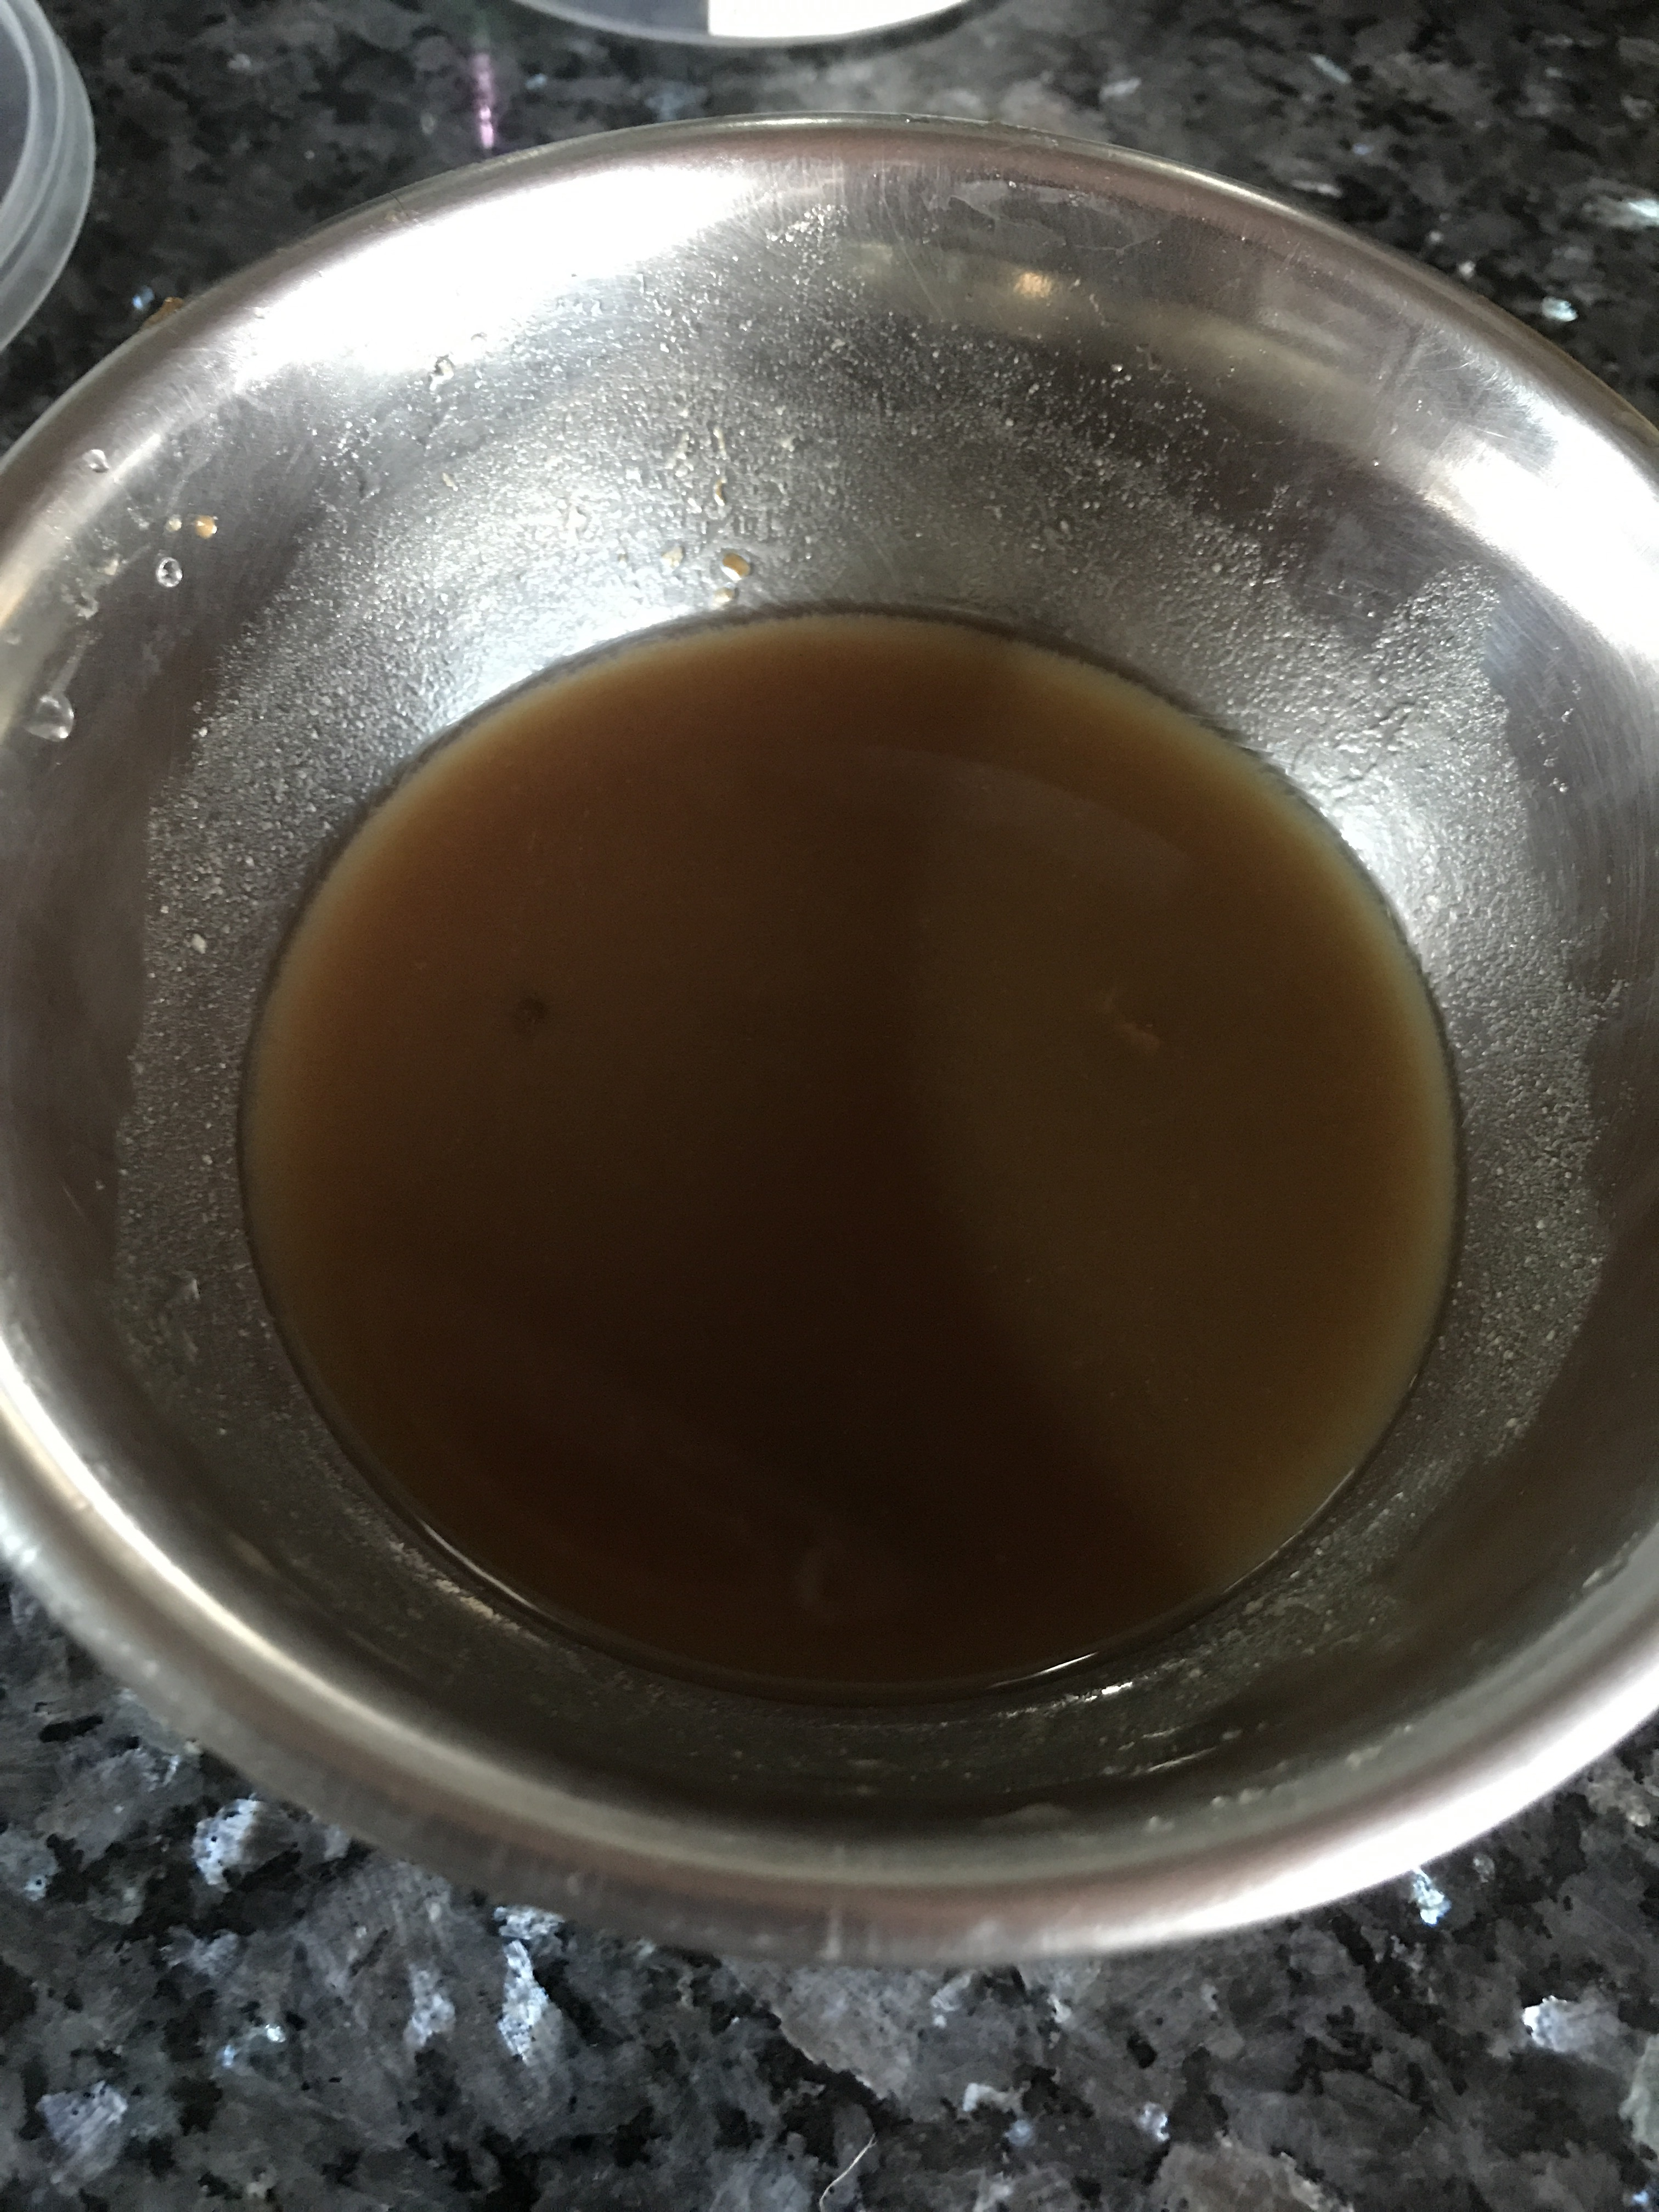 This is tamarind water